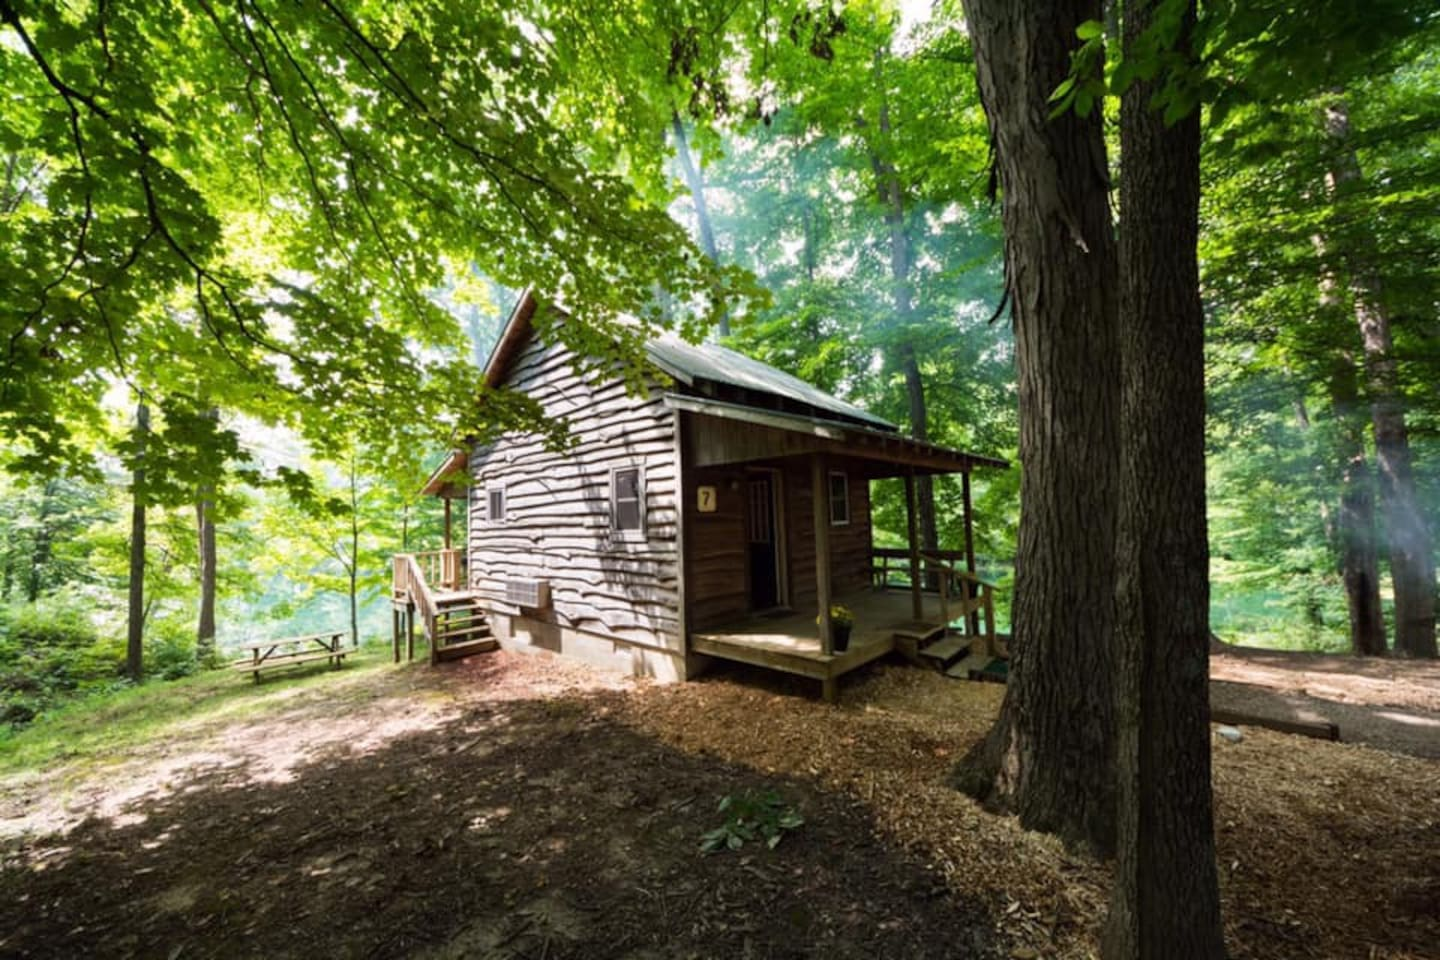 enjoy the rustic cabin with air conditioning and heat